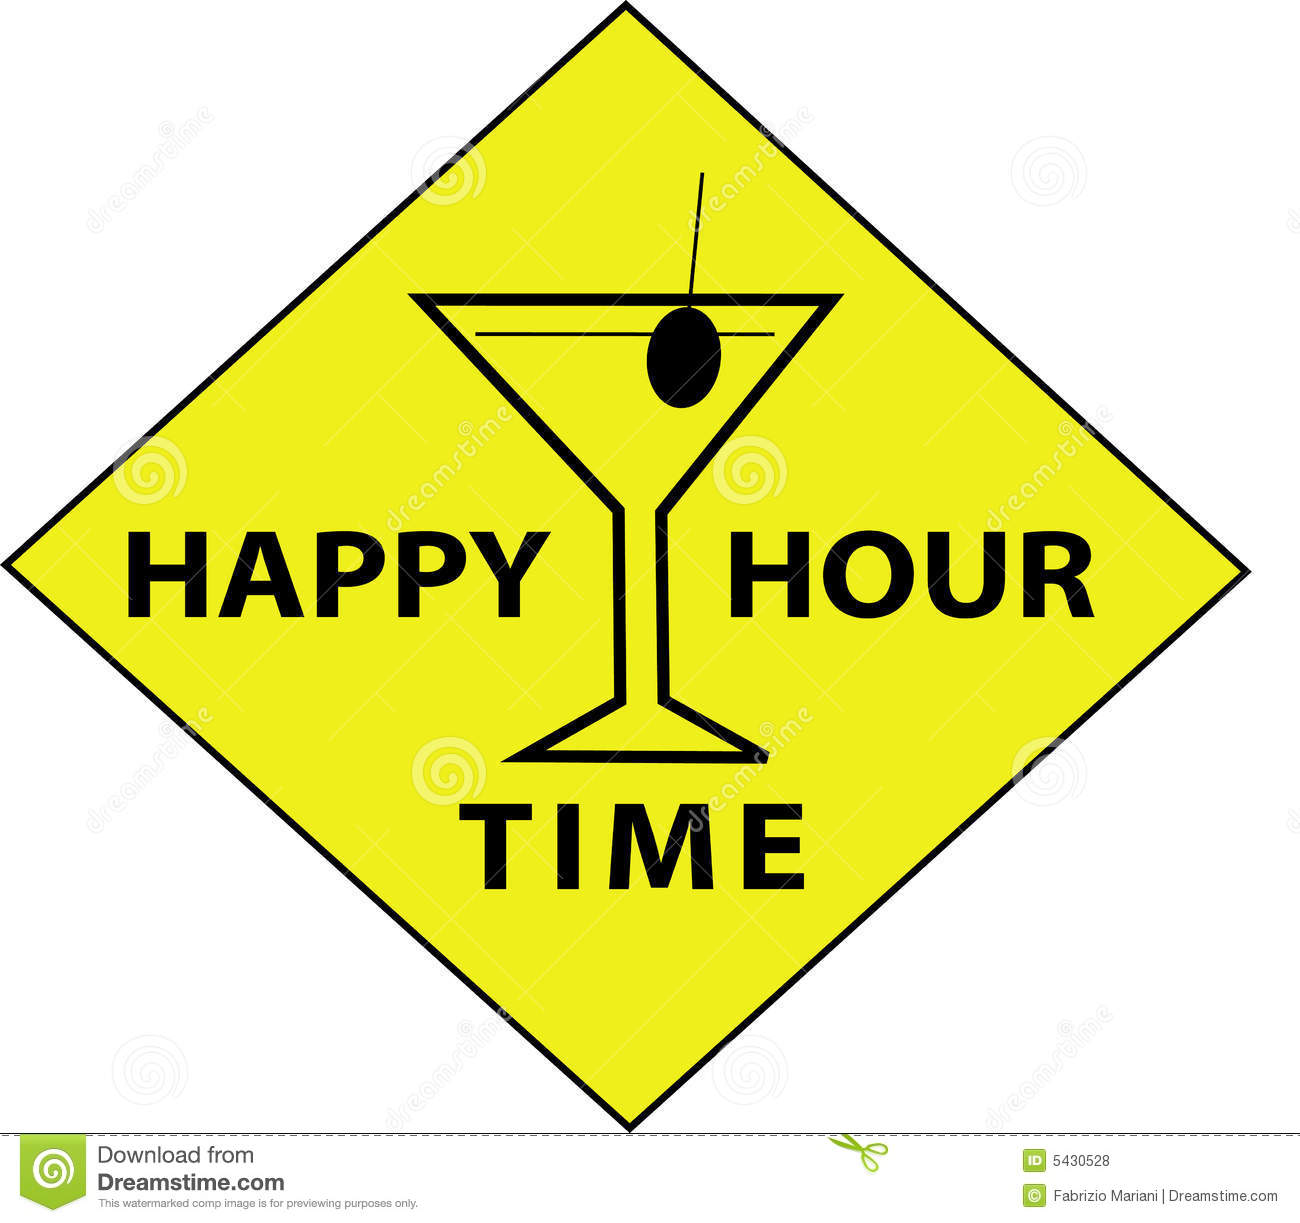 happy hour time sign stock vector illustration of funny